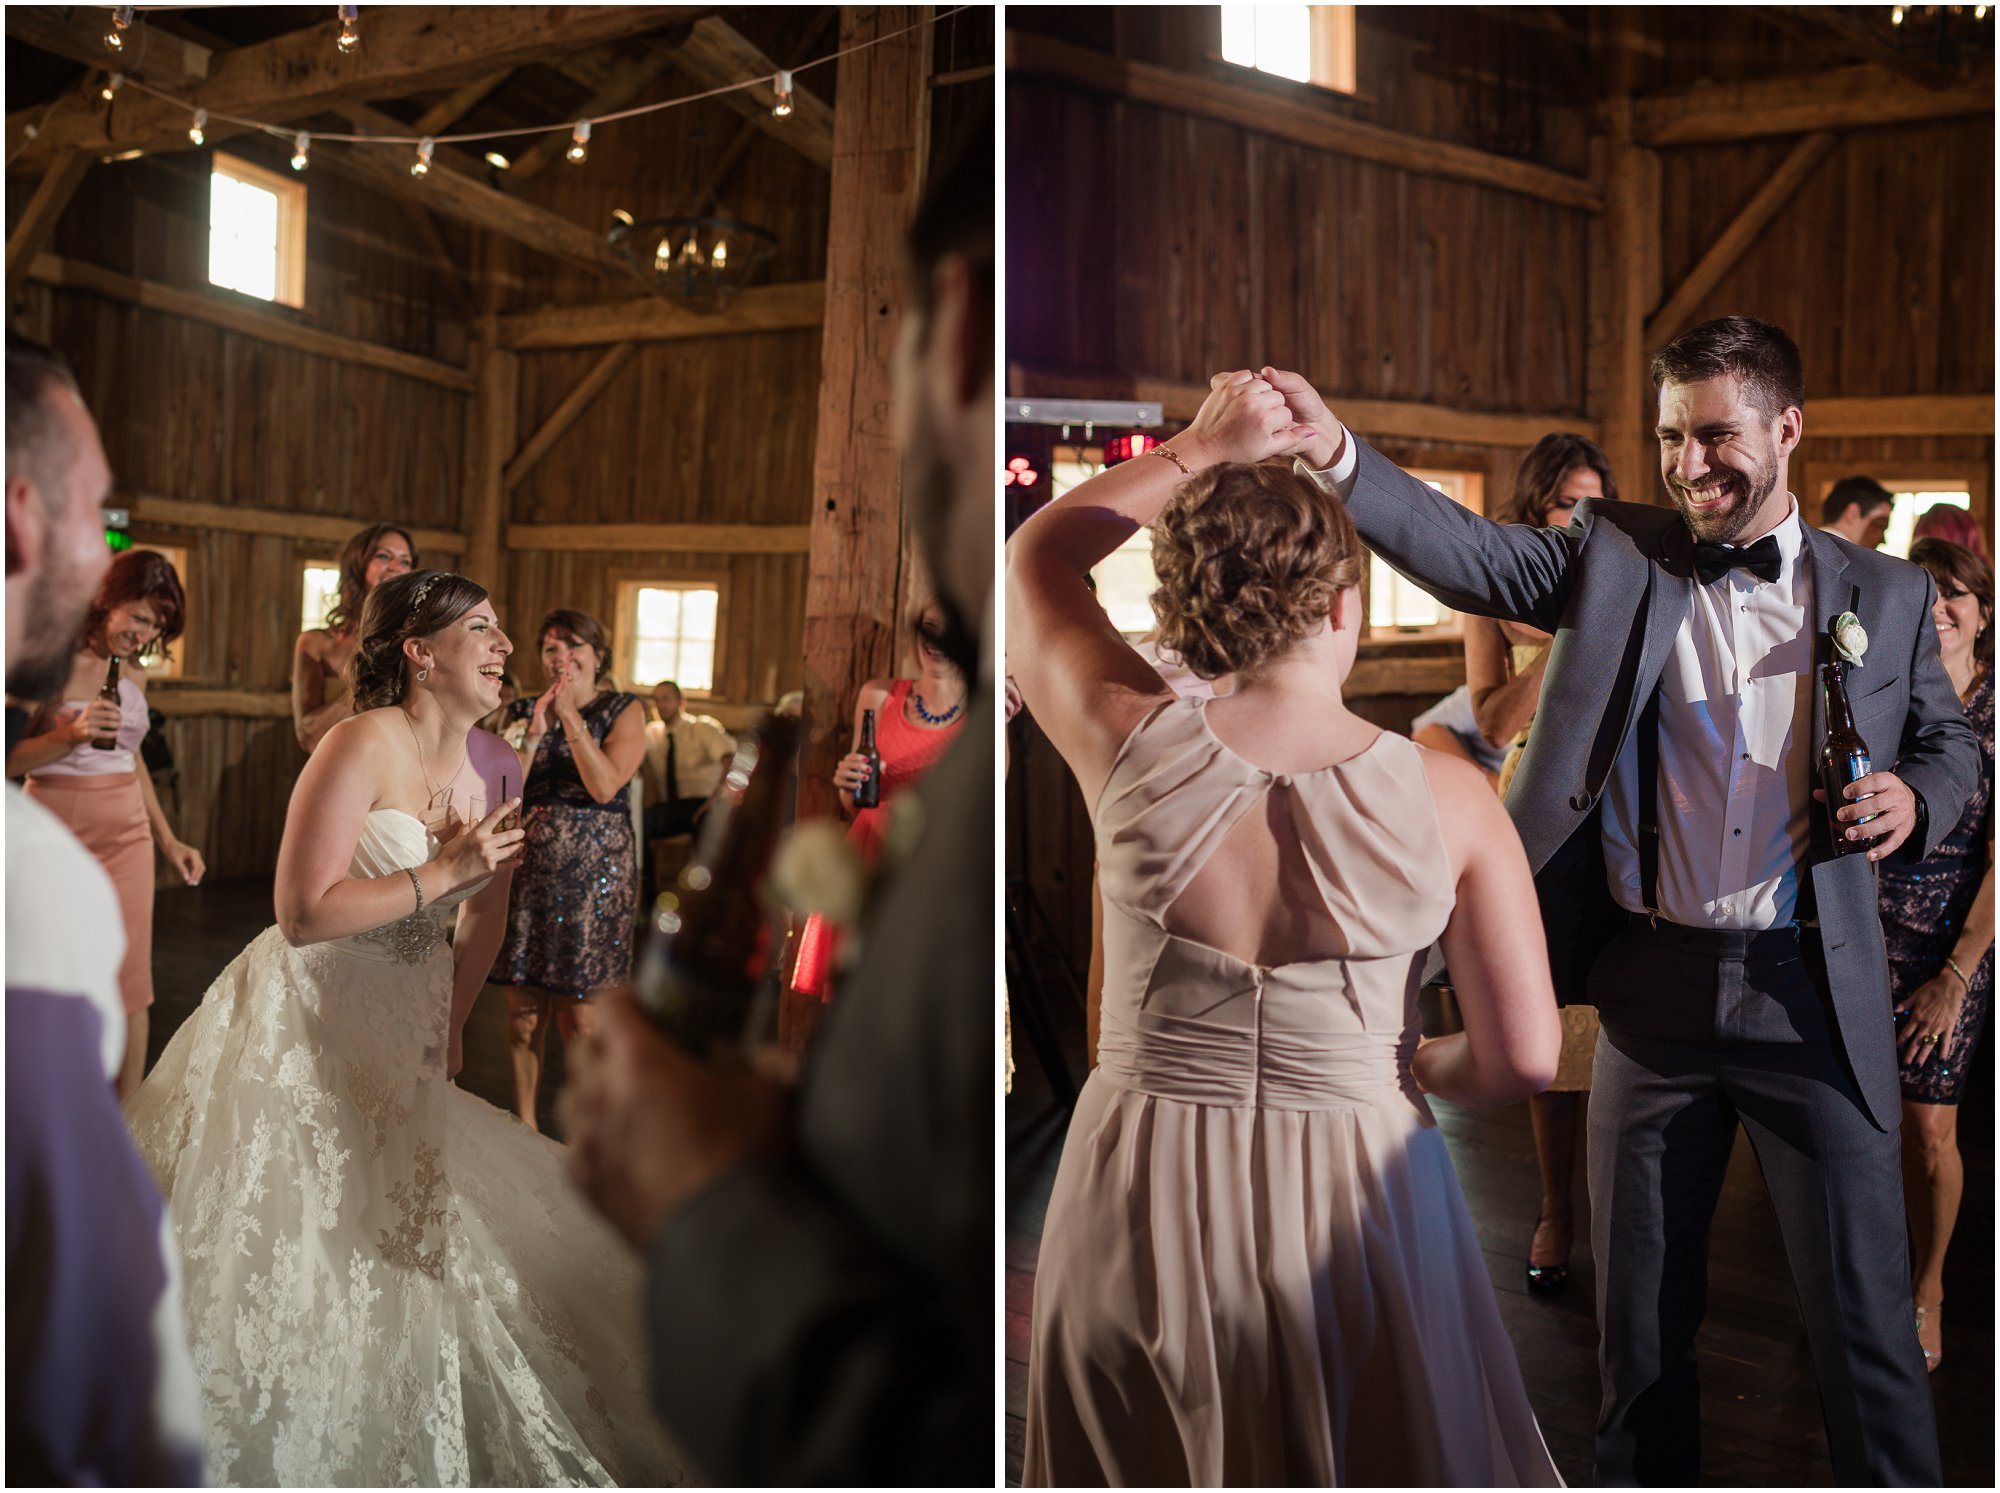 cornman-farms-wedding-michigan-barn-wedding_0991.jpg